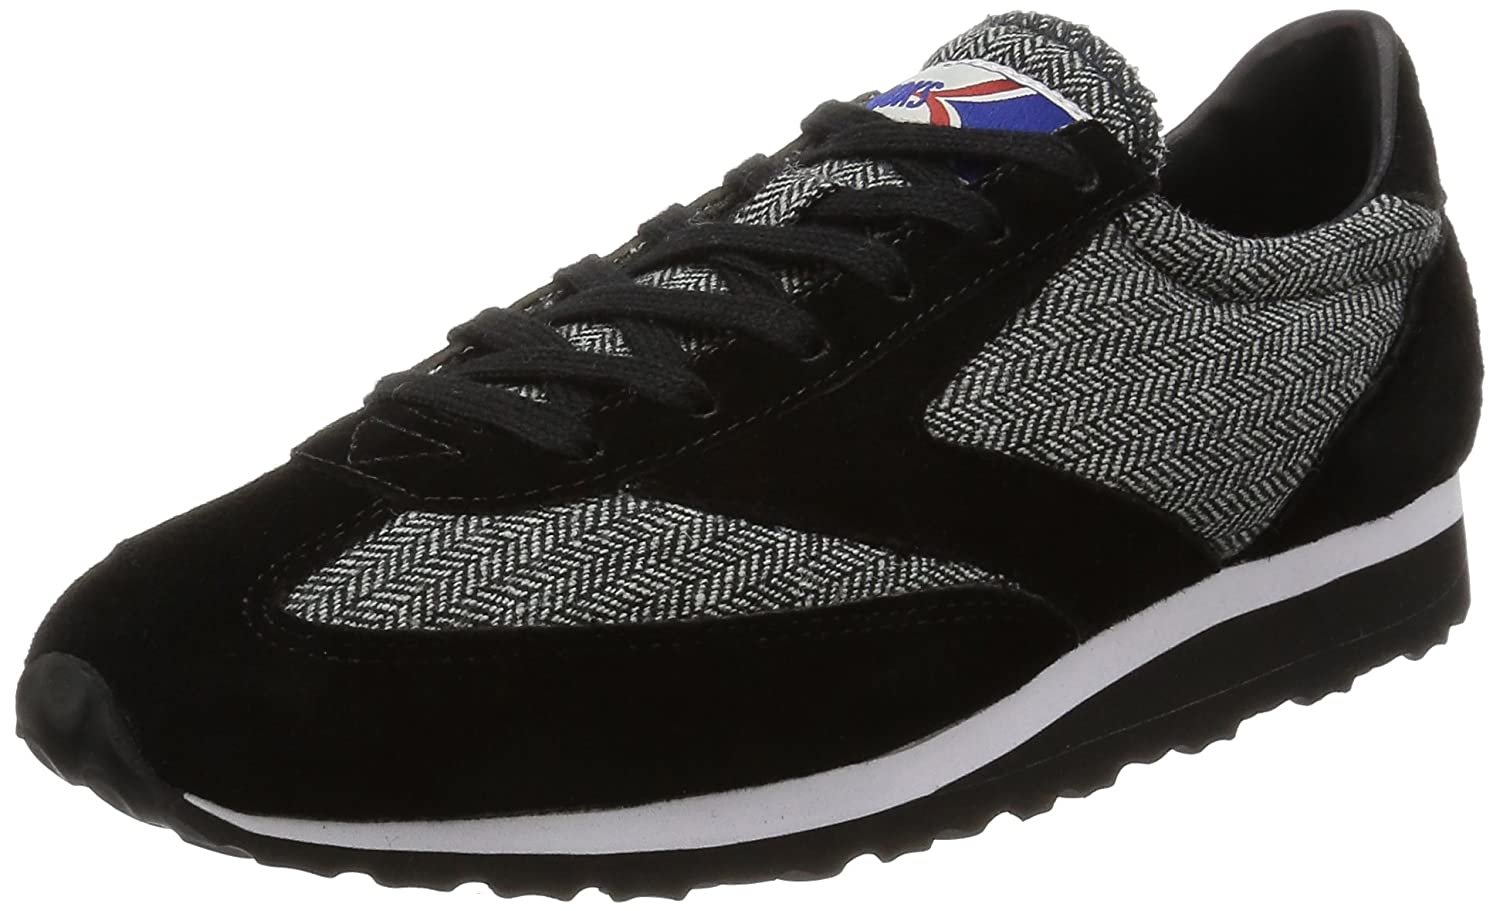 Brooks Heritage Womens Vanguard B00MCPUKNS 8.5 B(M) US|Black Tweed